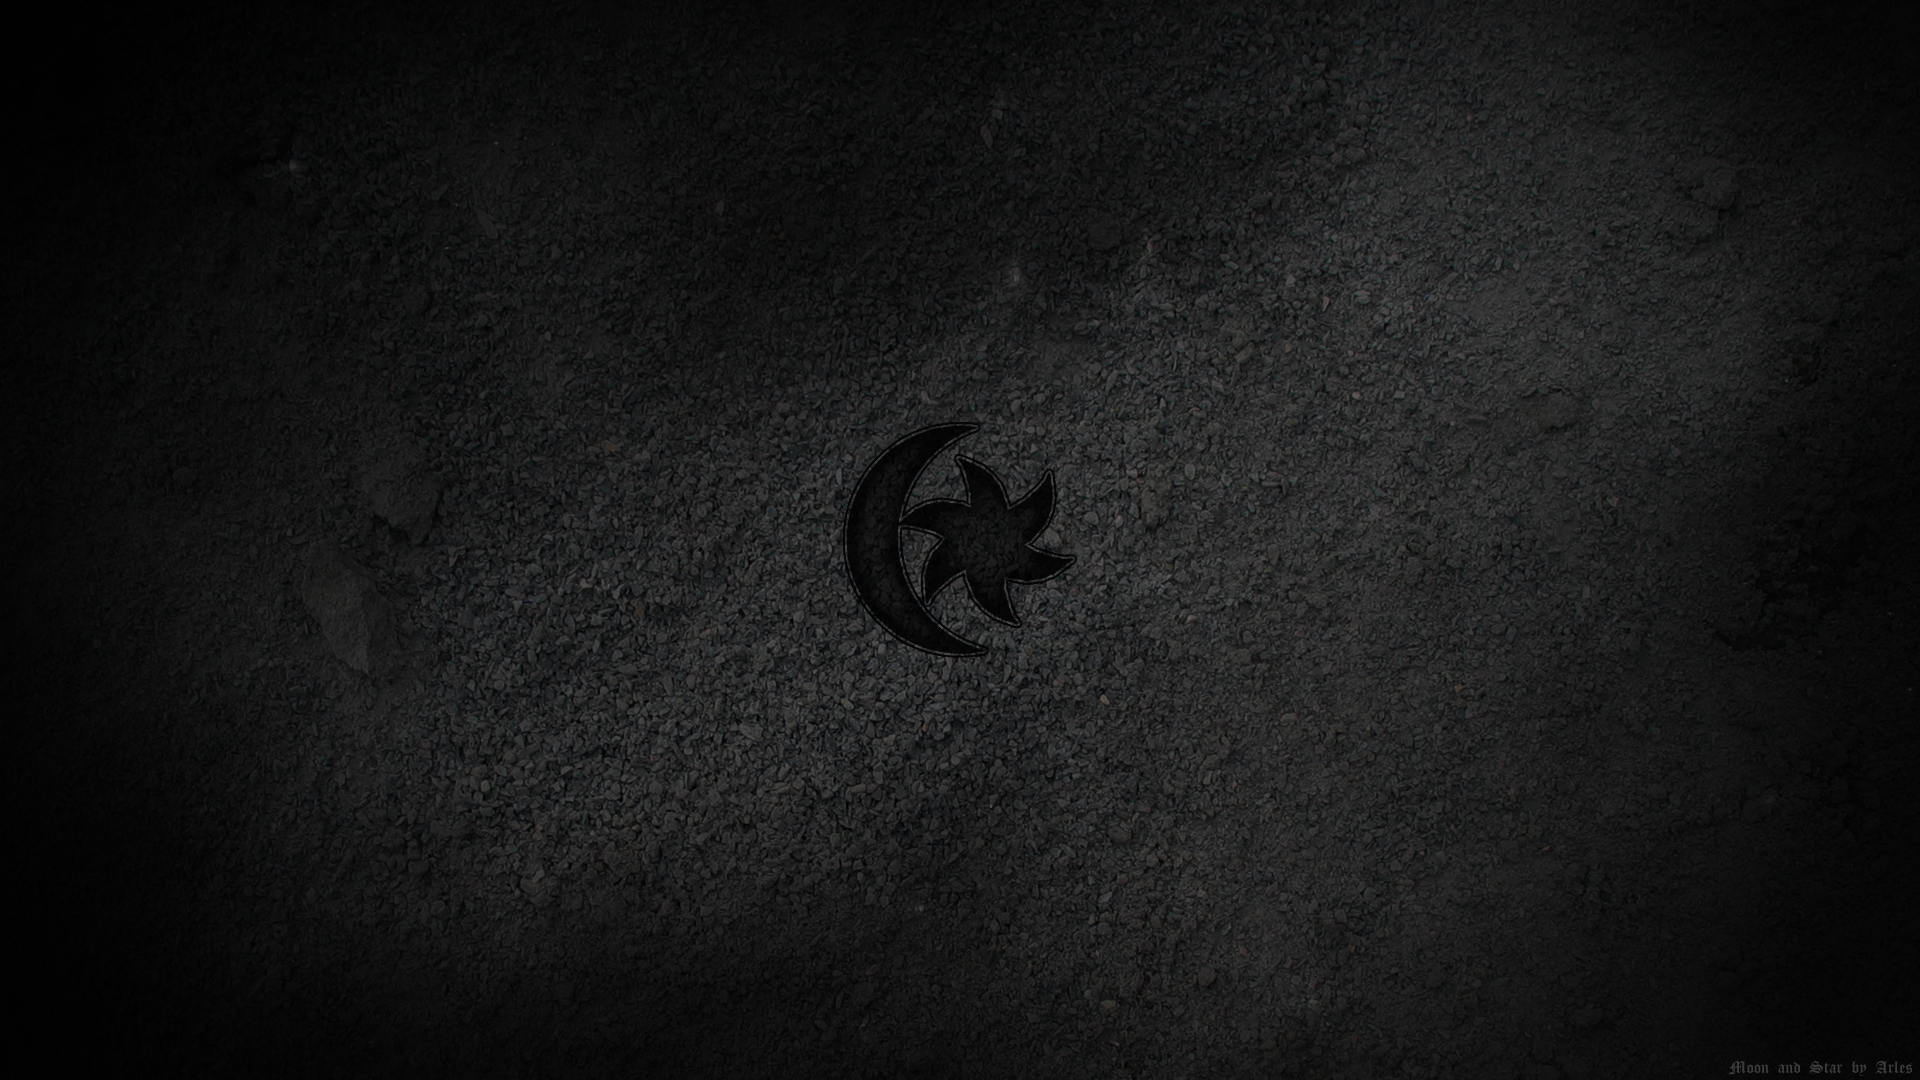 Morrowind Wallpaper 1920x1080 Posted By John Anderson